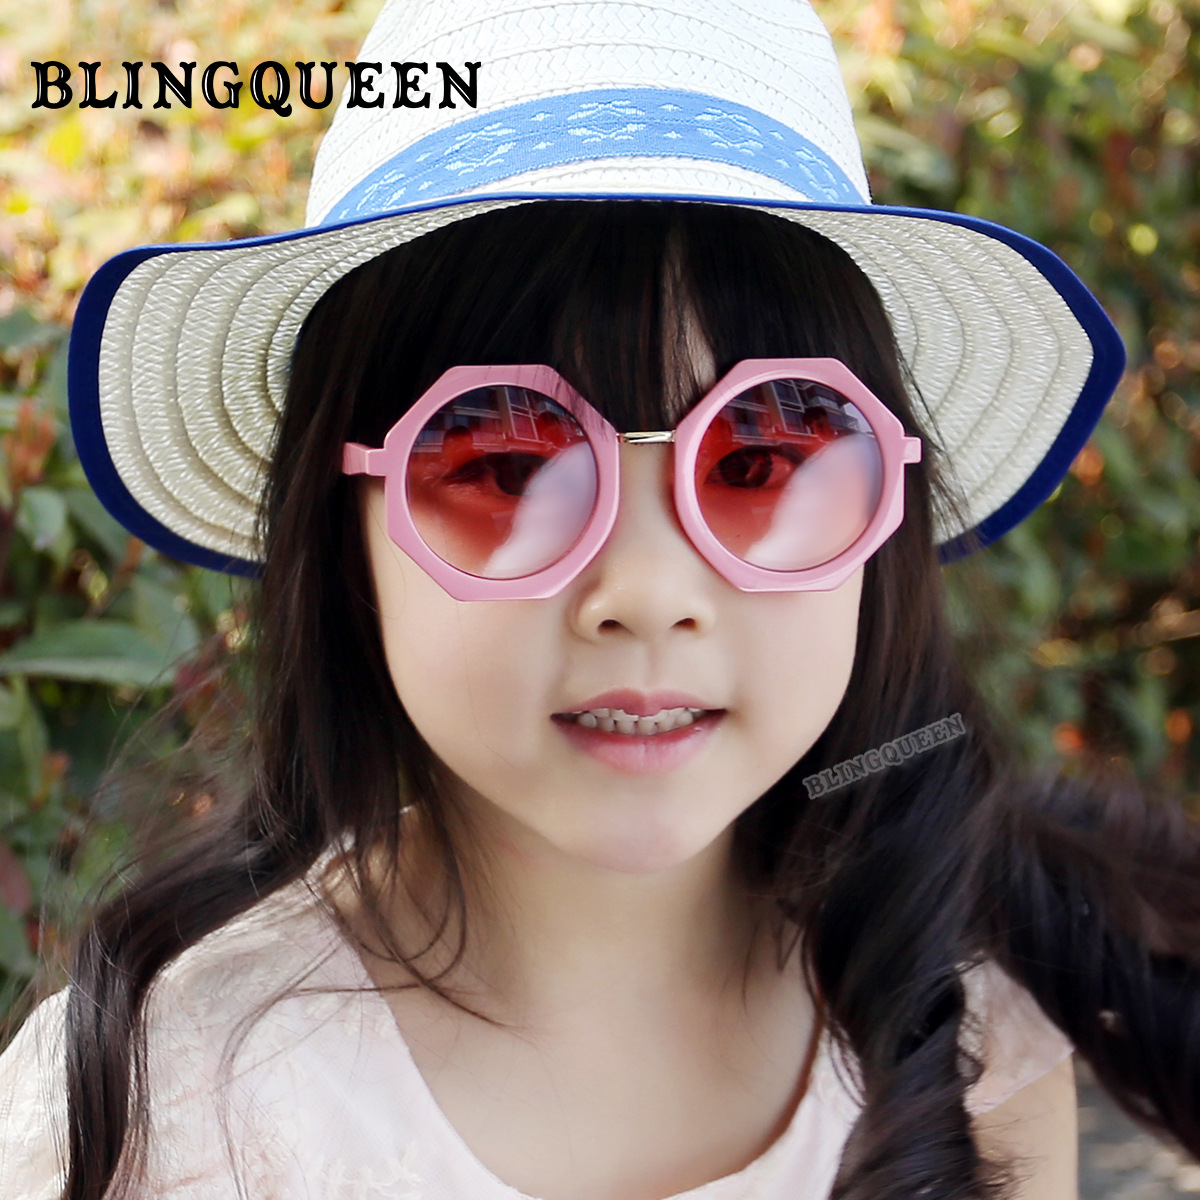 Fashion Sunglasses Whole  online get cute baby sunglasses aliexpress com alibaba group